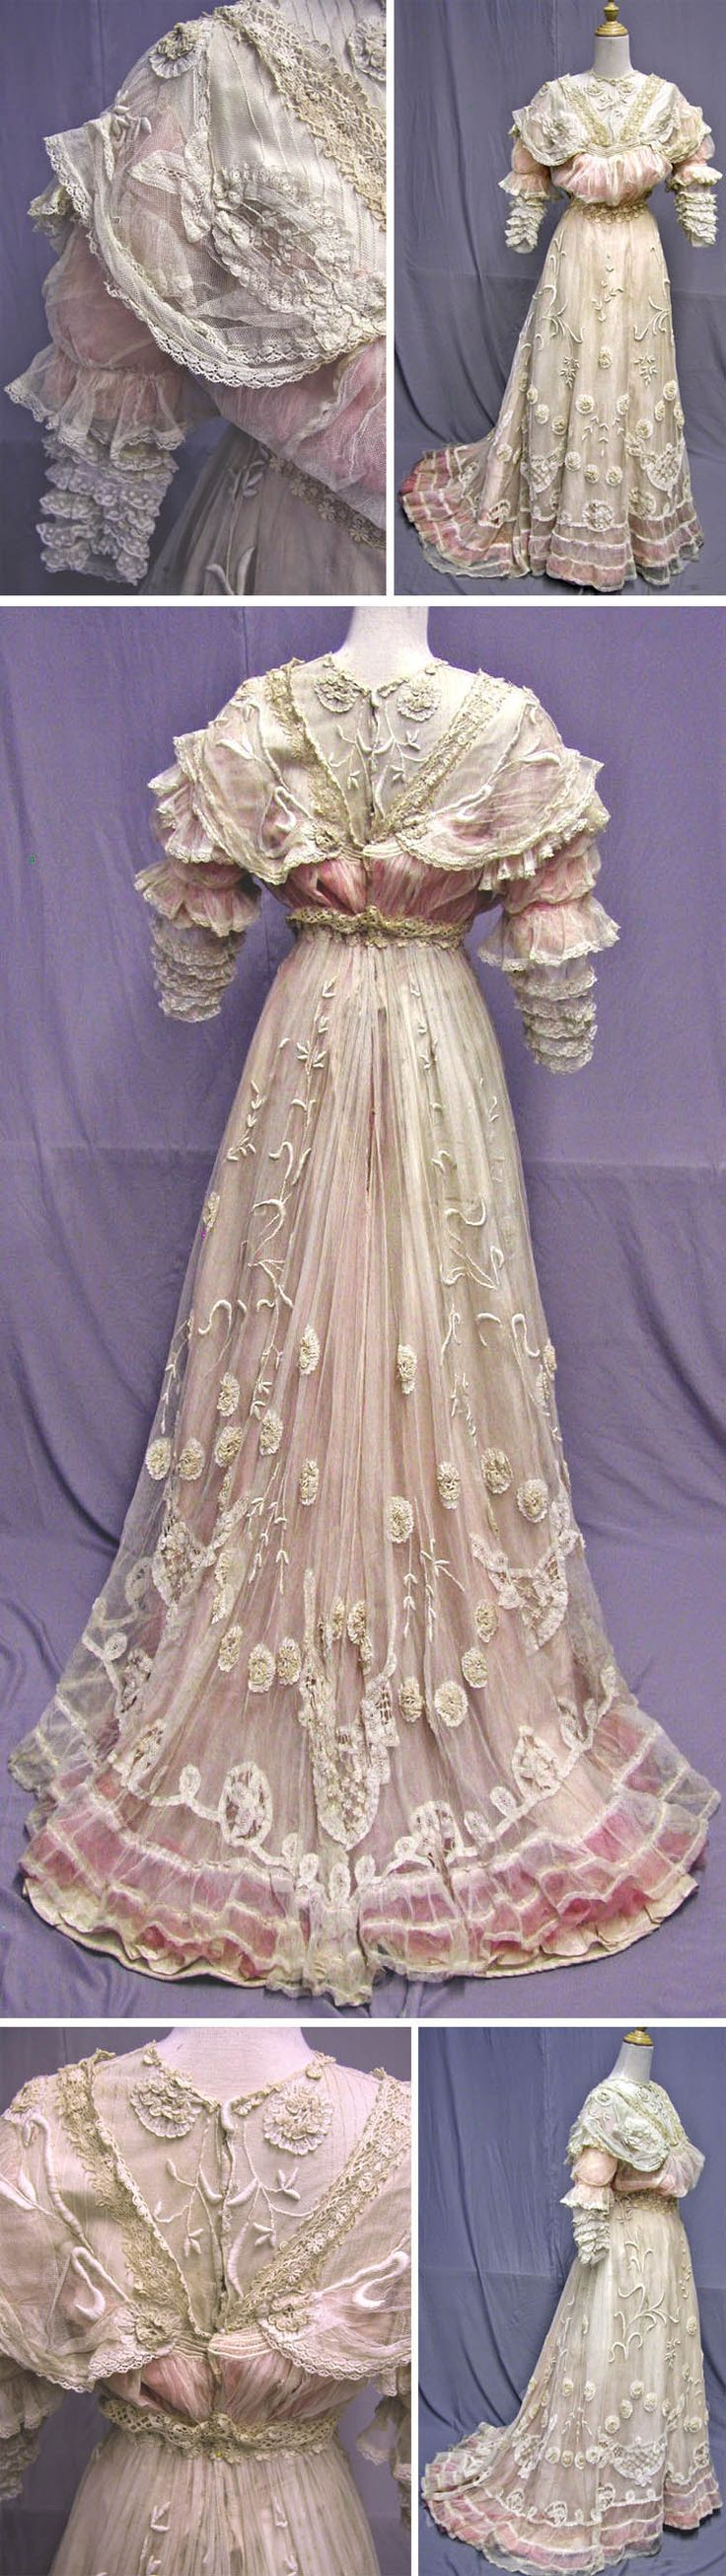 Reception gown for summer, circa 1902. Ivory cotton netting with Cluny lace in a floral pattern, with embroidered vines.